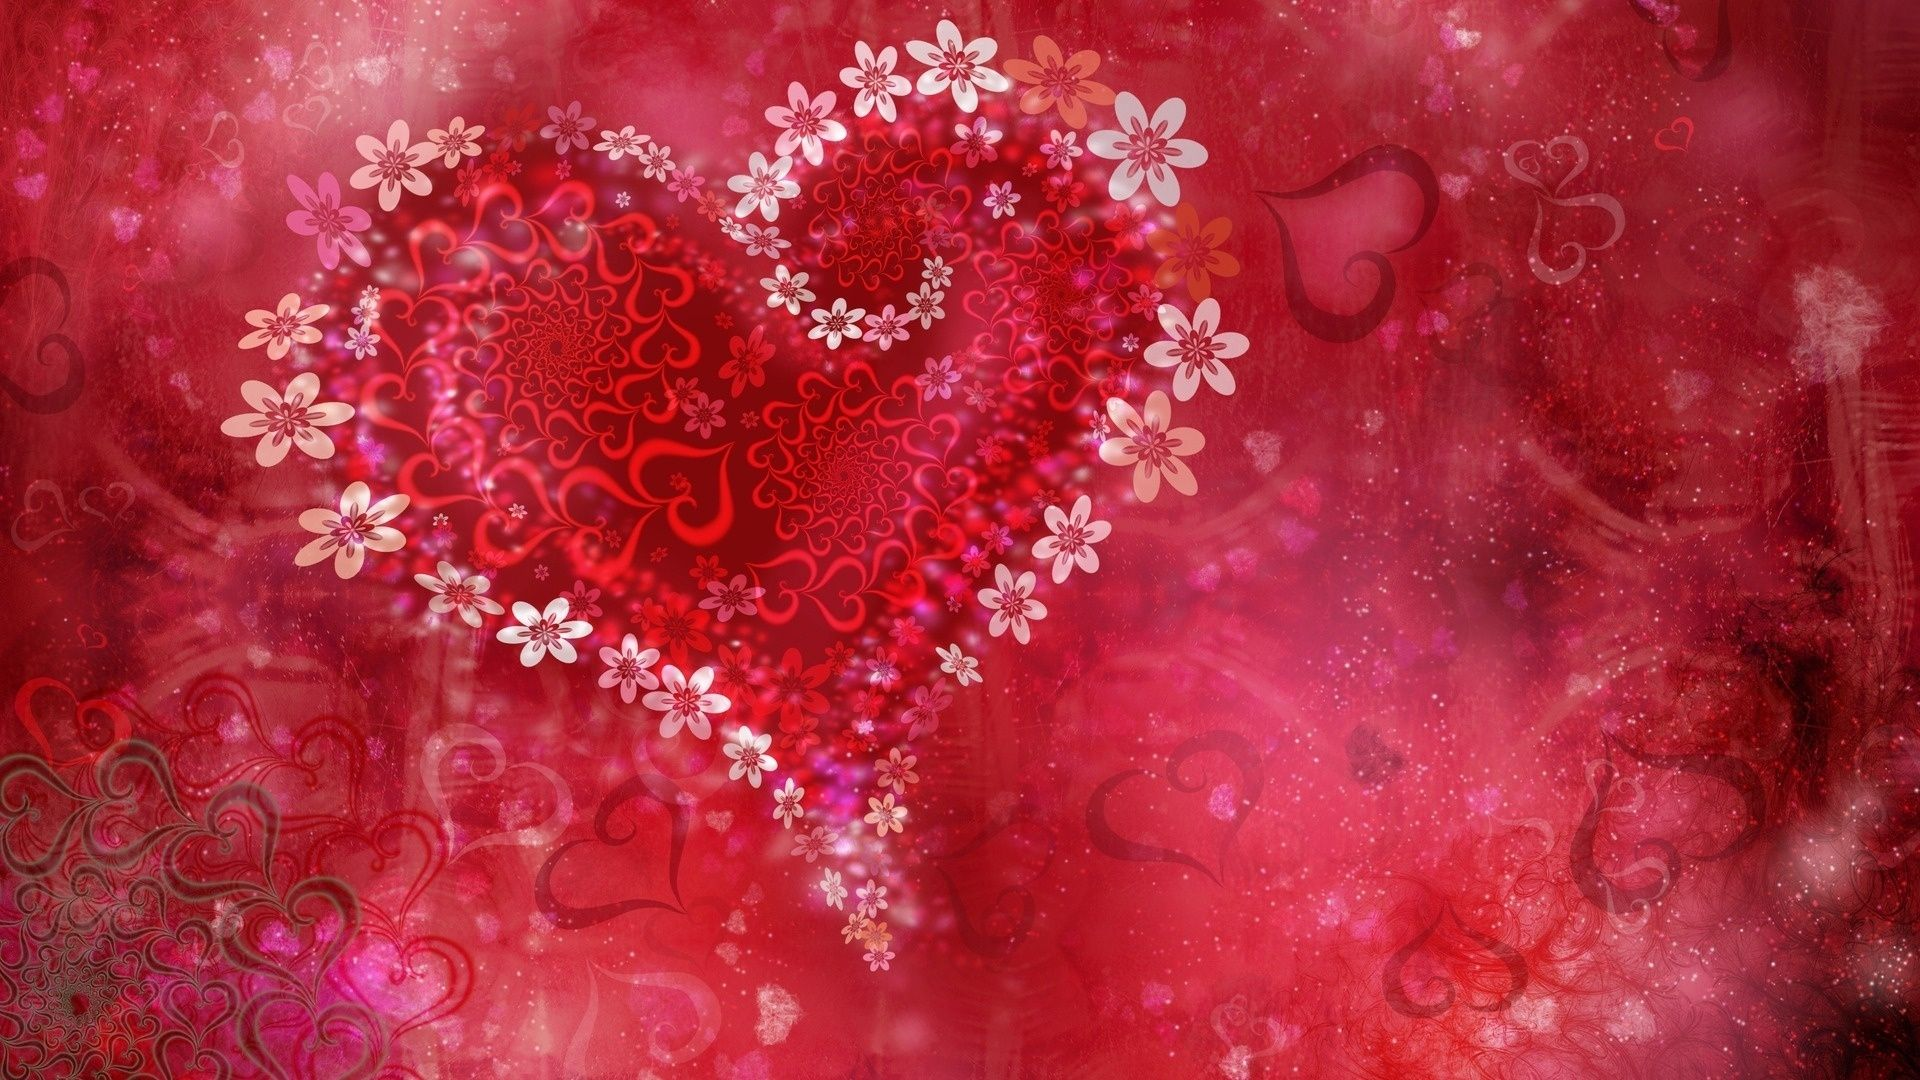 10 New Heart Wallpapers Free Download Full Hd 1080p For Pc Background Heart Wallpaper Valentines Wallpaper Flower Heart